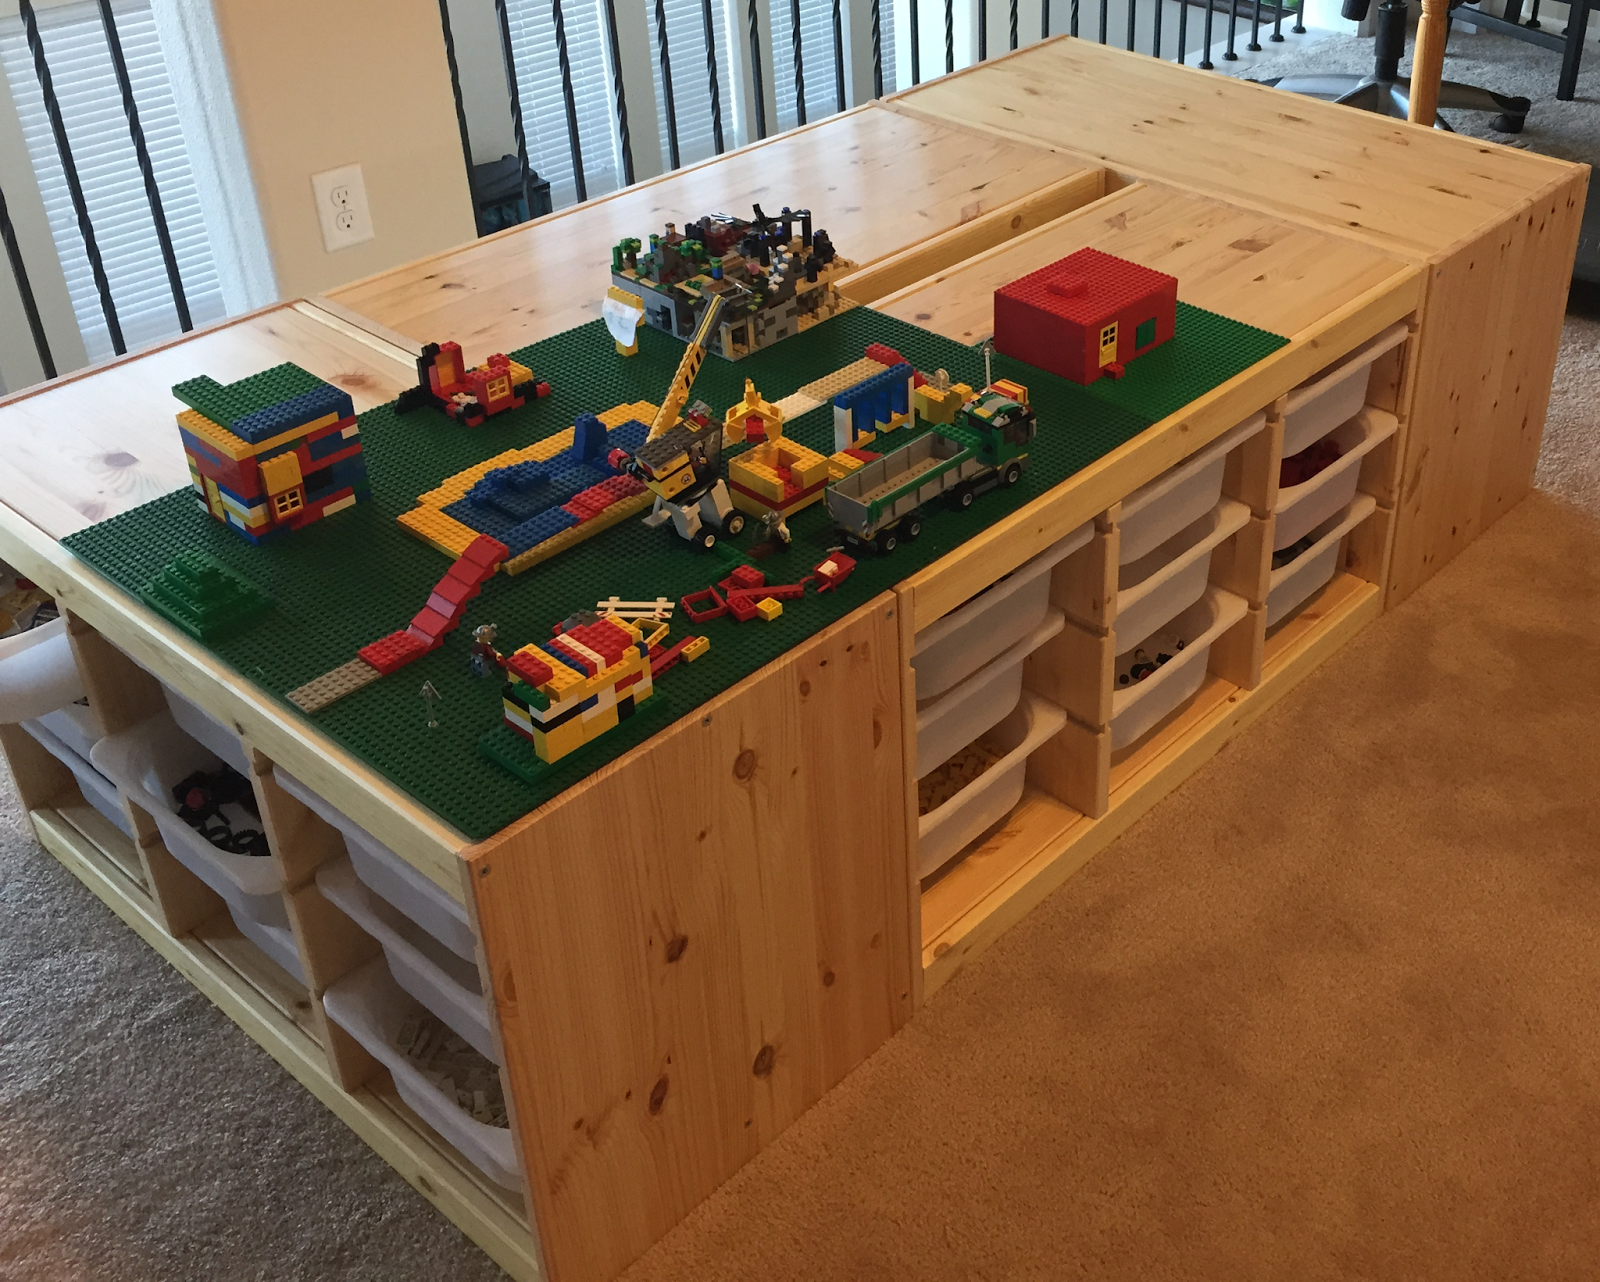 A Story About How The Lego Table Goes Awesome This